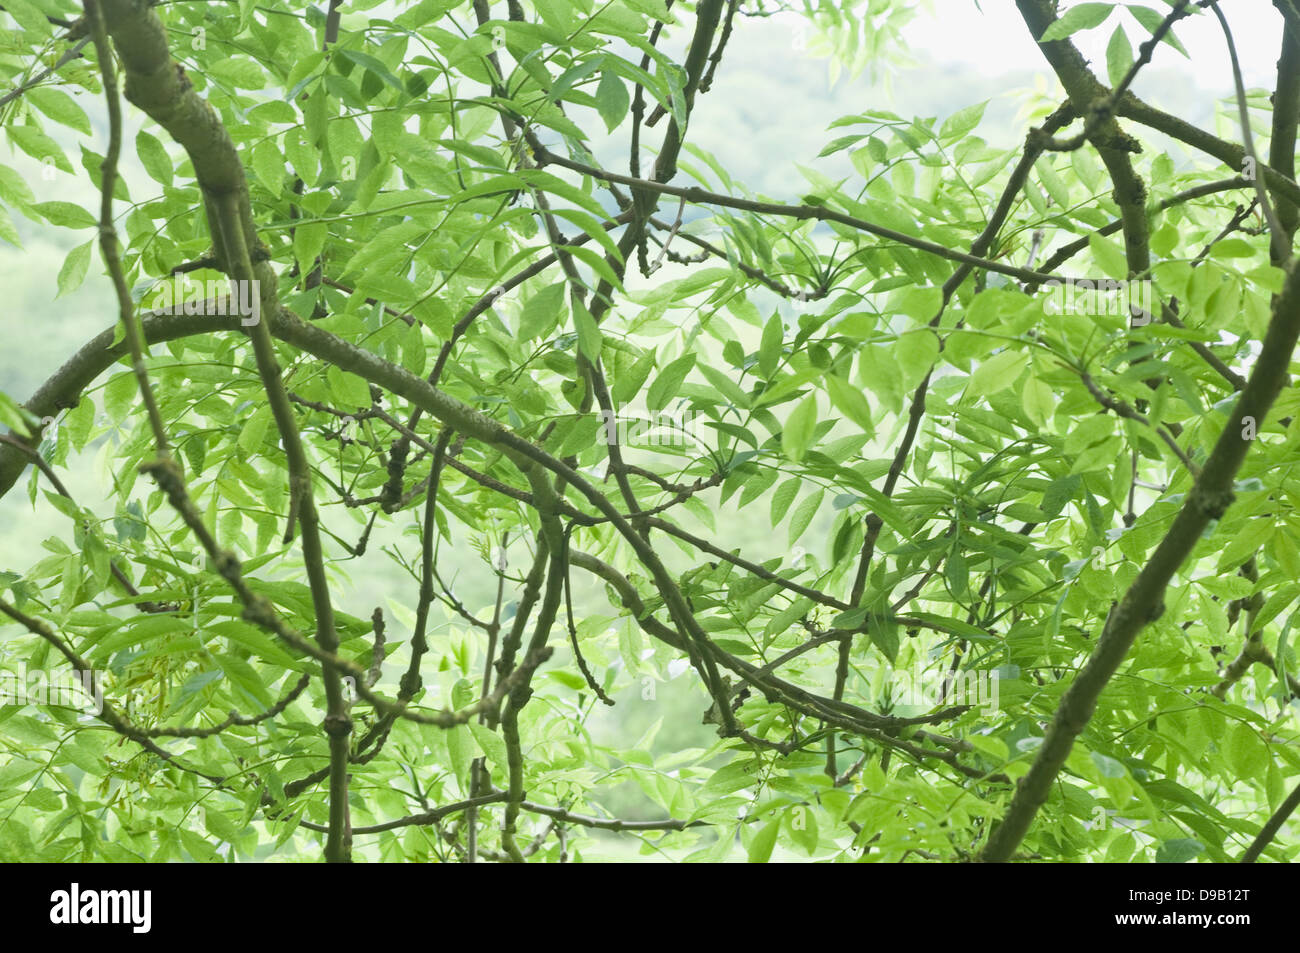 Ash Tree ( Fraxinus excelsior ) leaves, twigs and branches. England, UK. - Stock Image